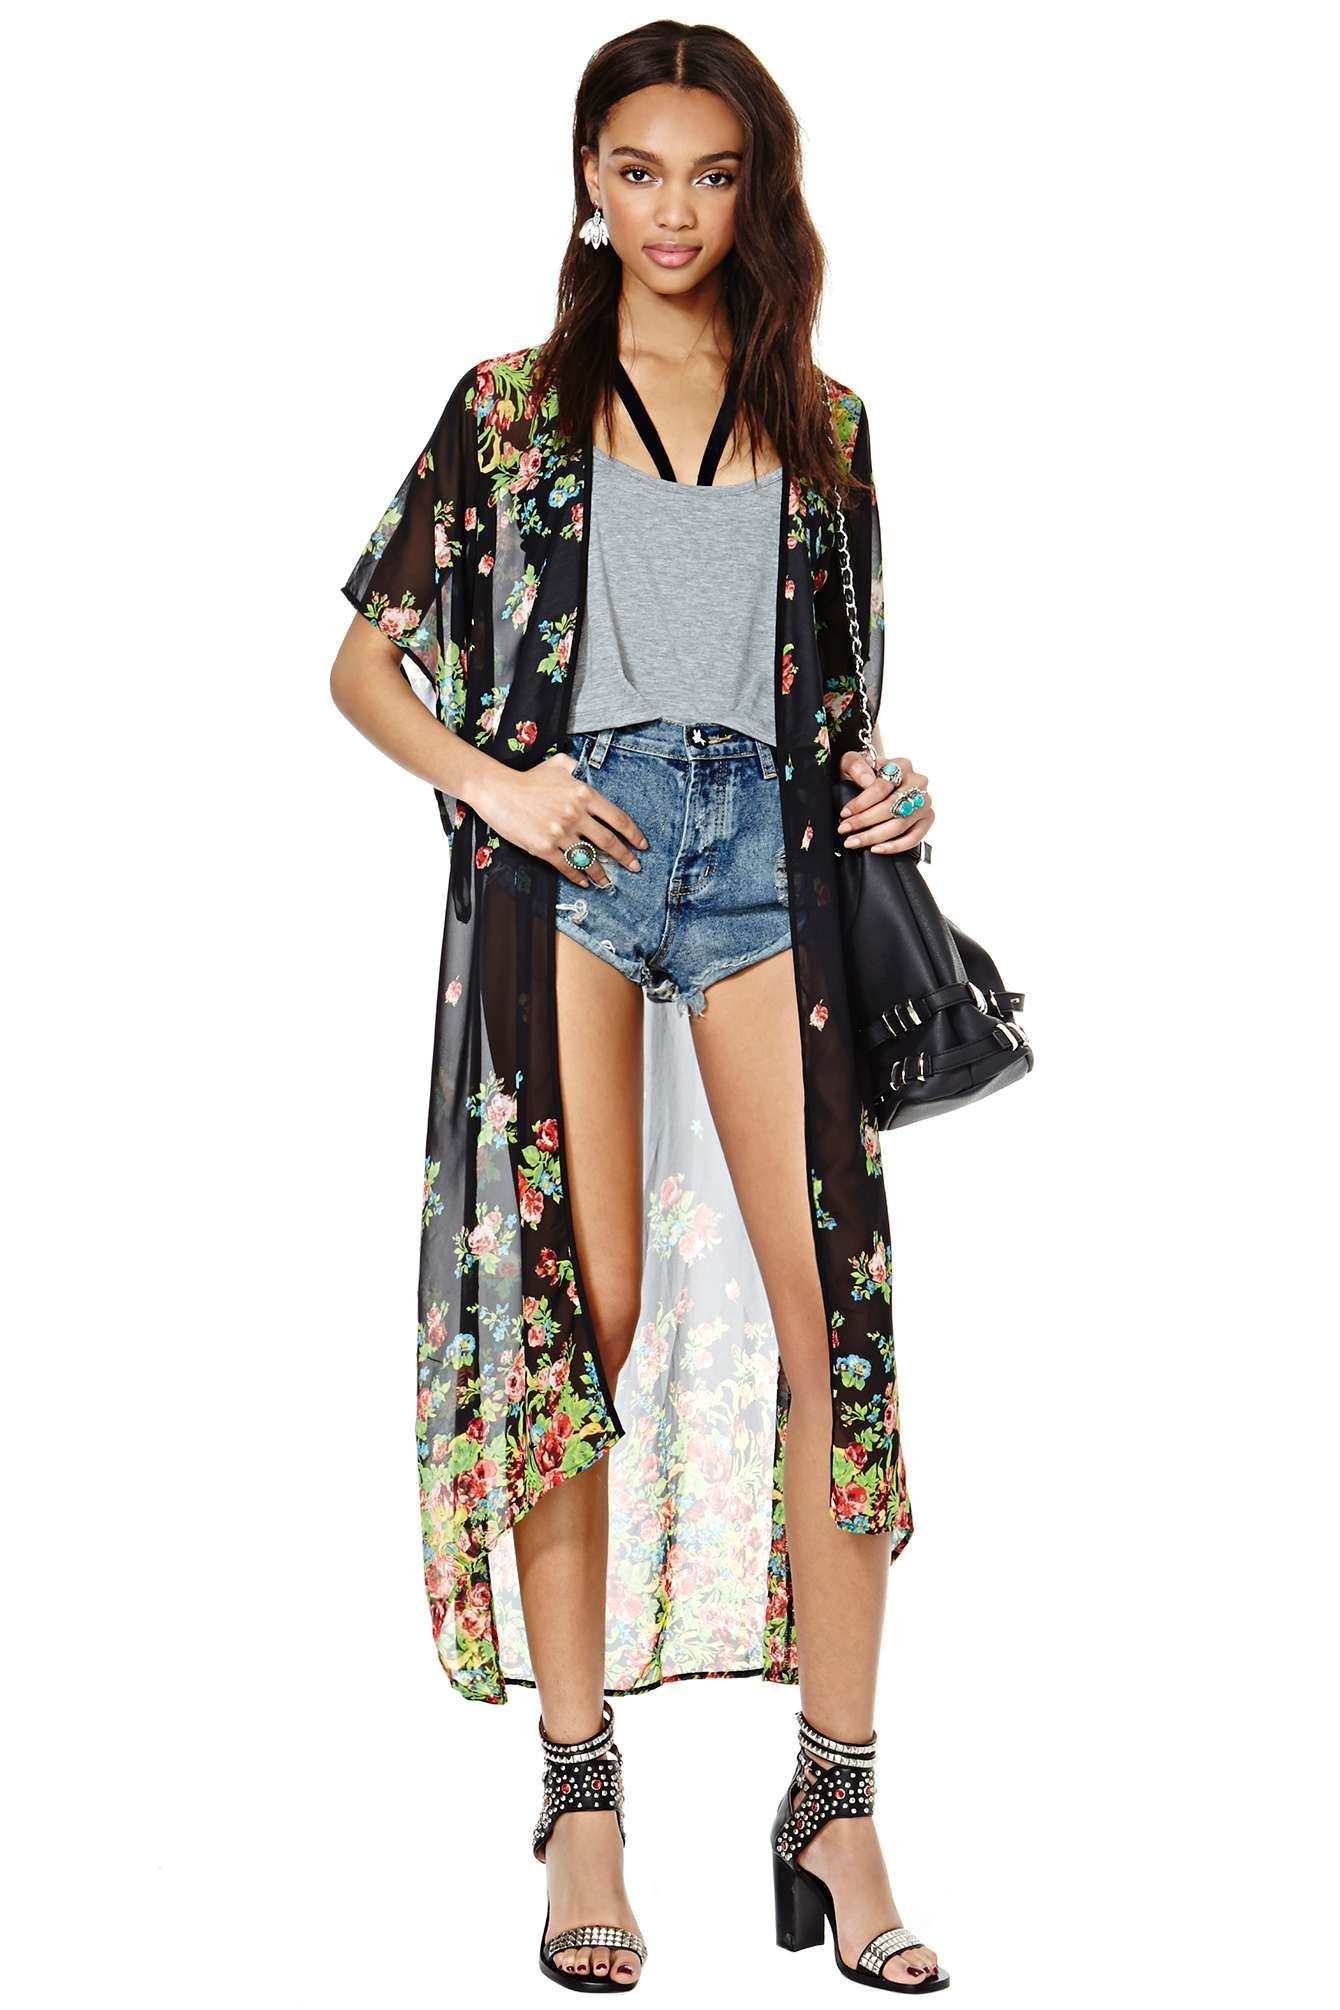 7a8674be66afd Floral Kimono Sheer Robe. Pair with a cute bikini for a glamorous pool  party outfit.